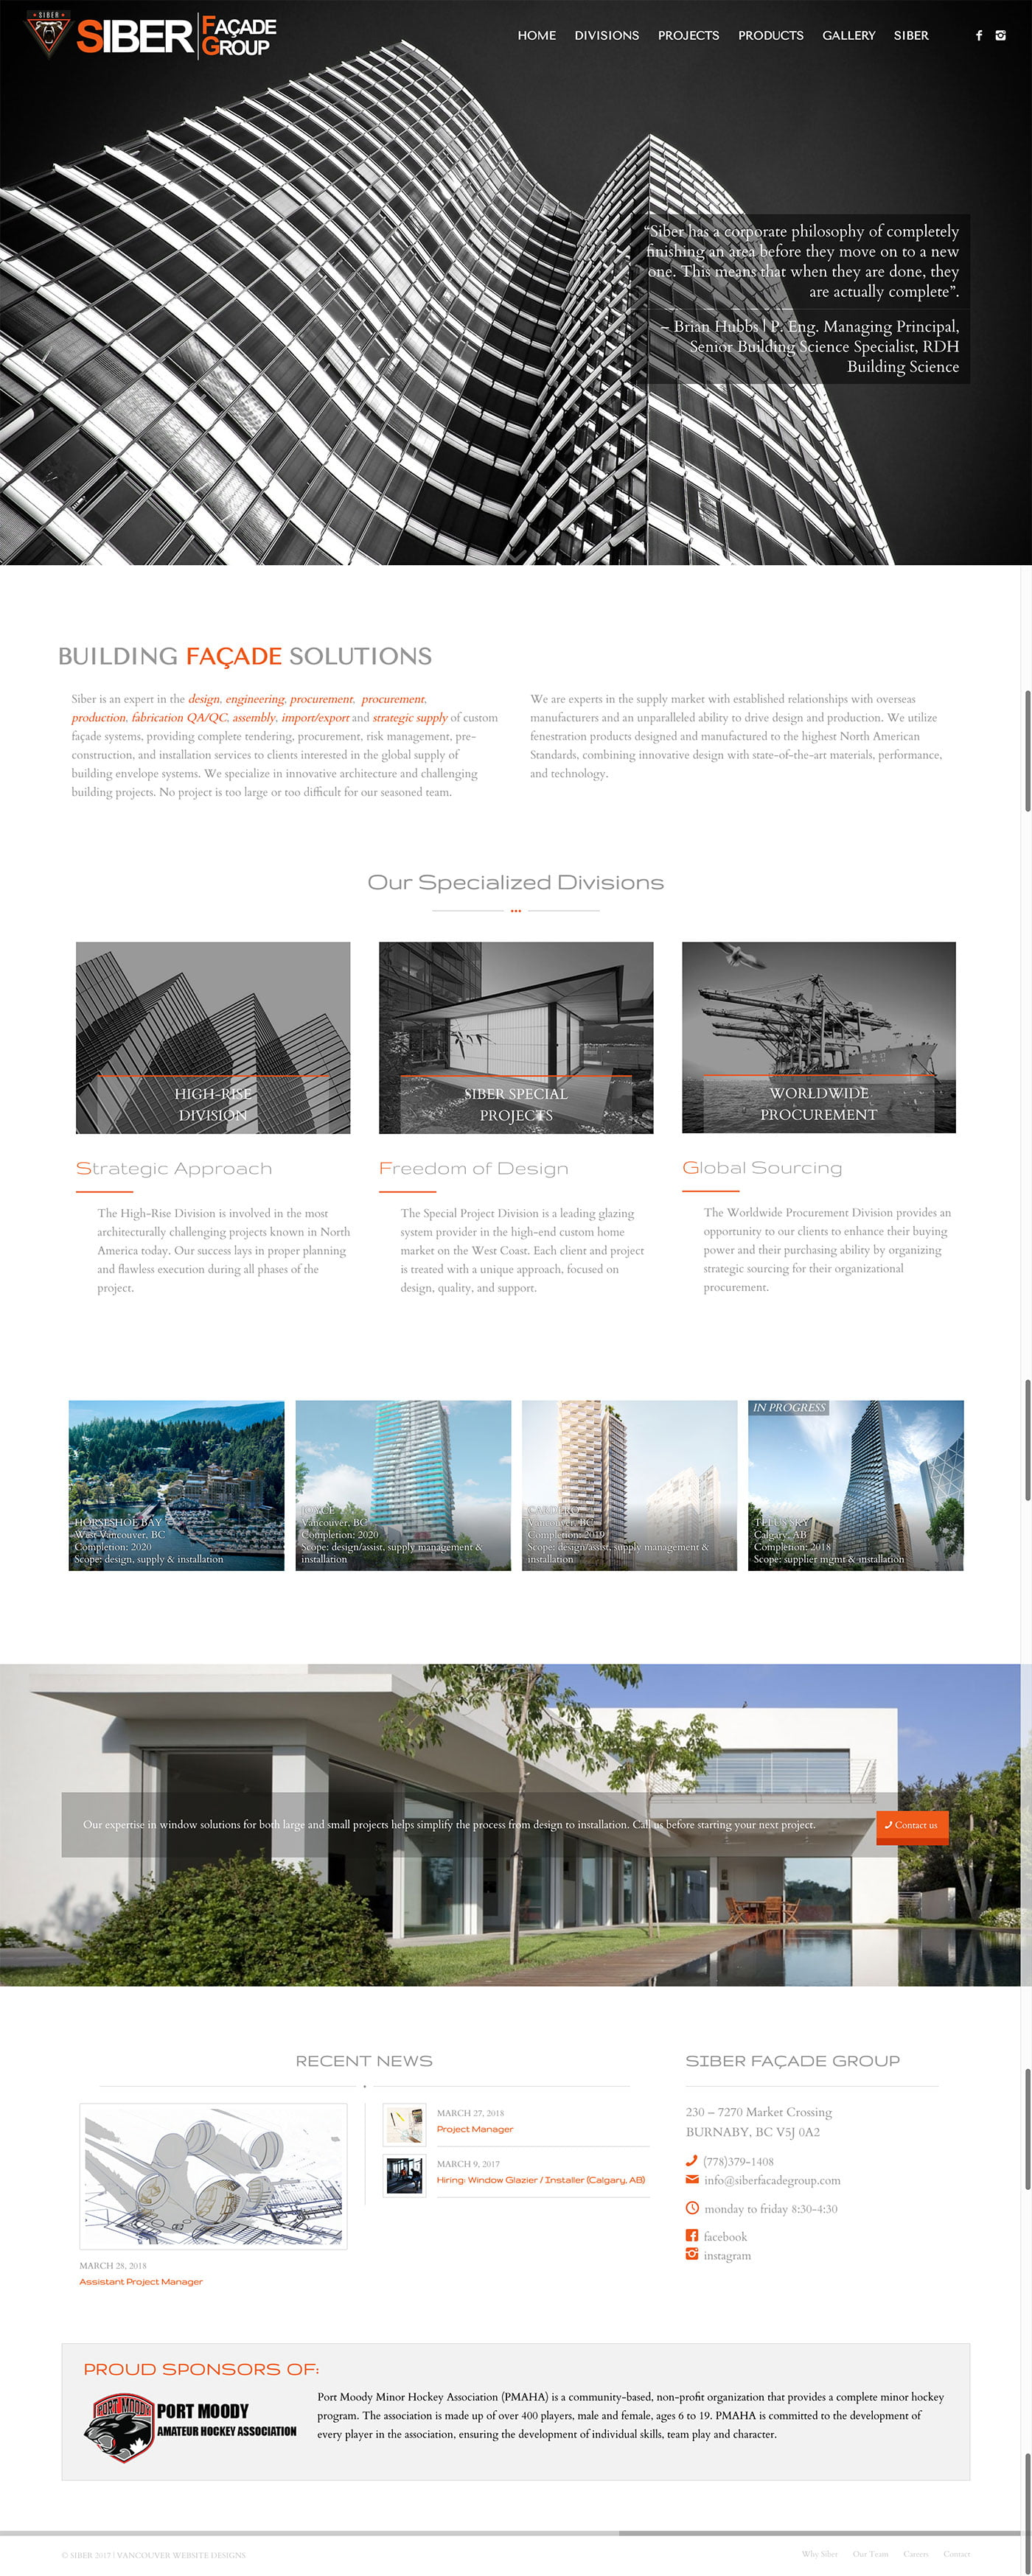 Siber-Facade-Group-webdesign-1400